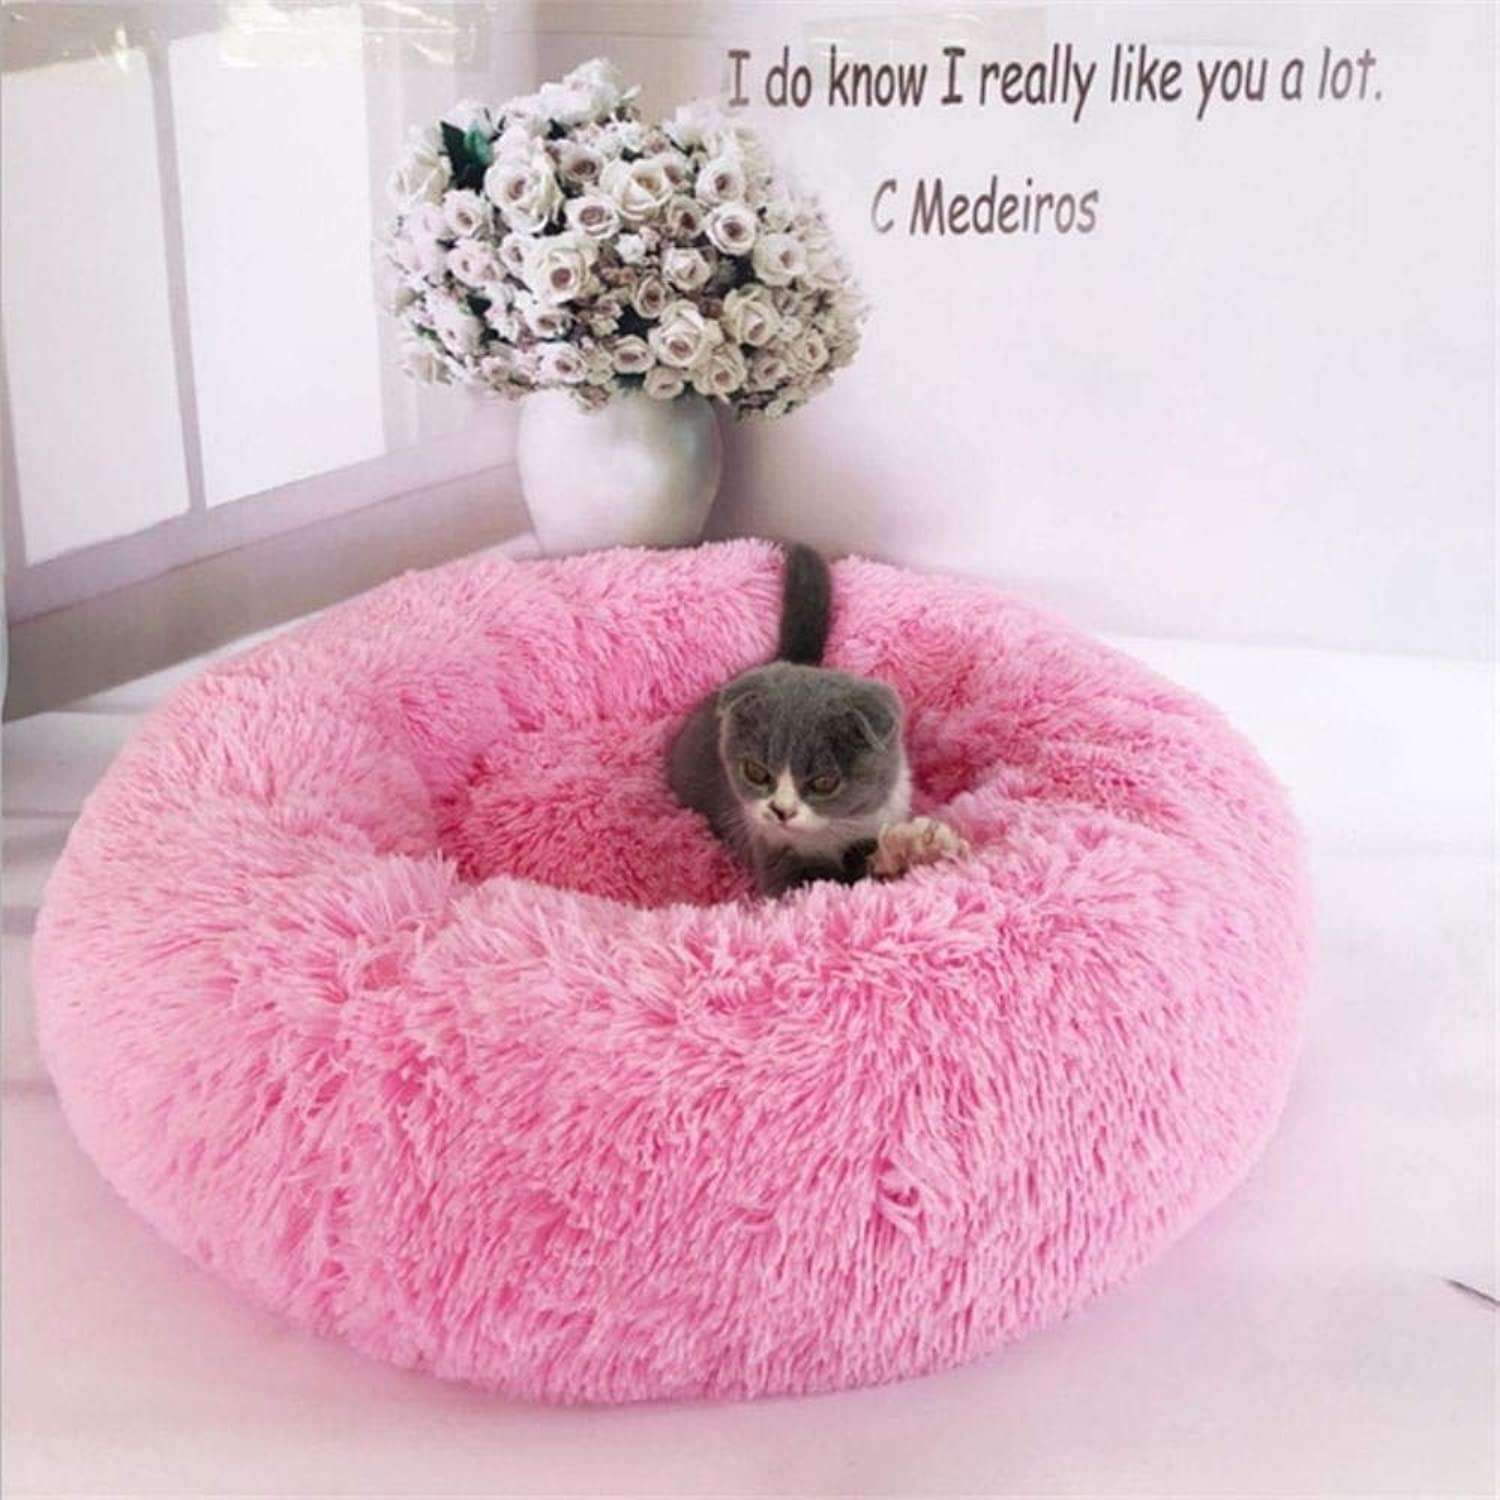 Luxury Dog Bed Warm Deep Sleep Thick Donut Pet Beds for Cat Small Medium Dogs LongPile Plush Soft Round Dog House (S 50cm 5kg Pet,Pink)